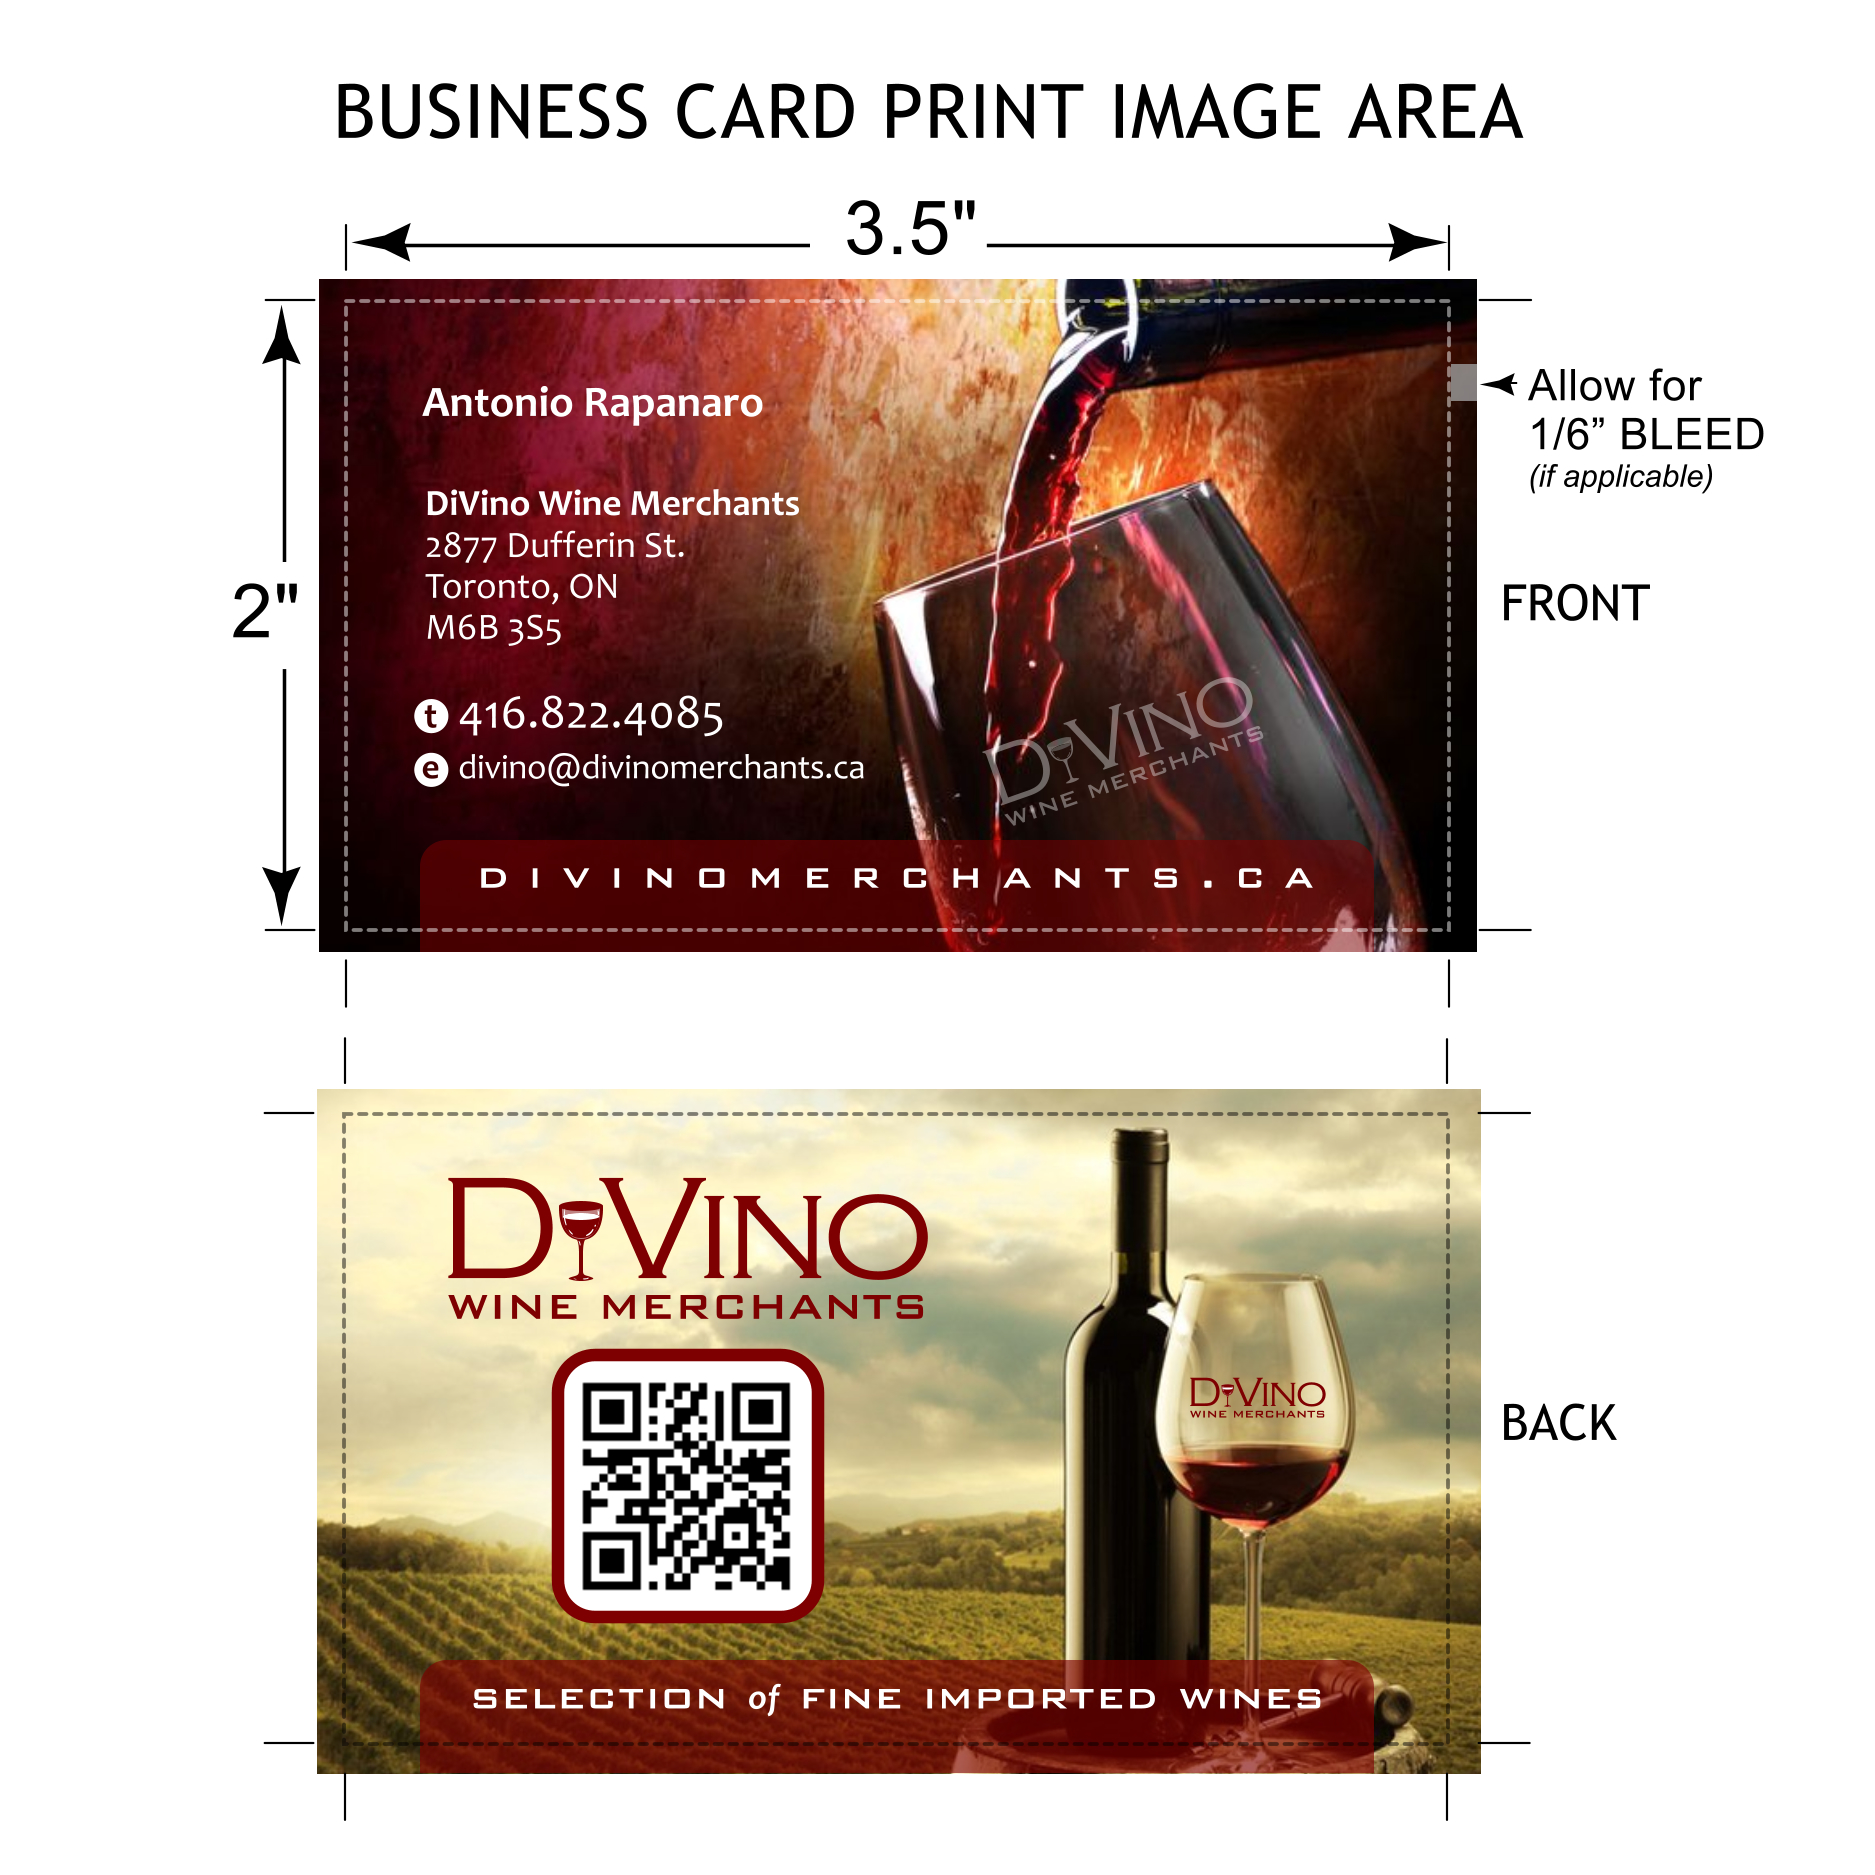 Business cards in north york image collections card design and business cards north york toronto choice image card design and business cards sign company in toronto reheart Images